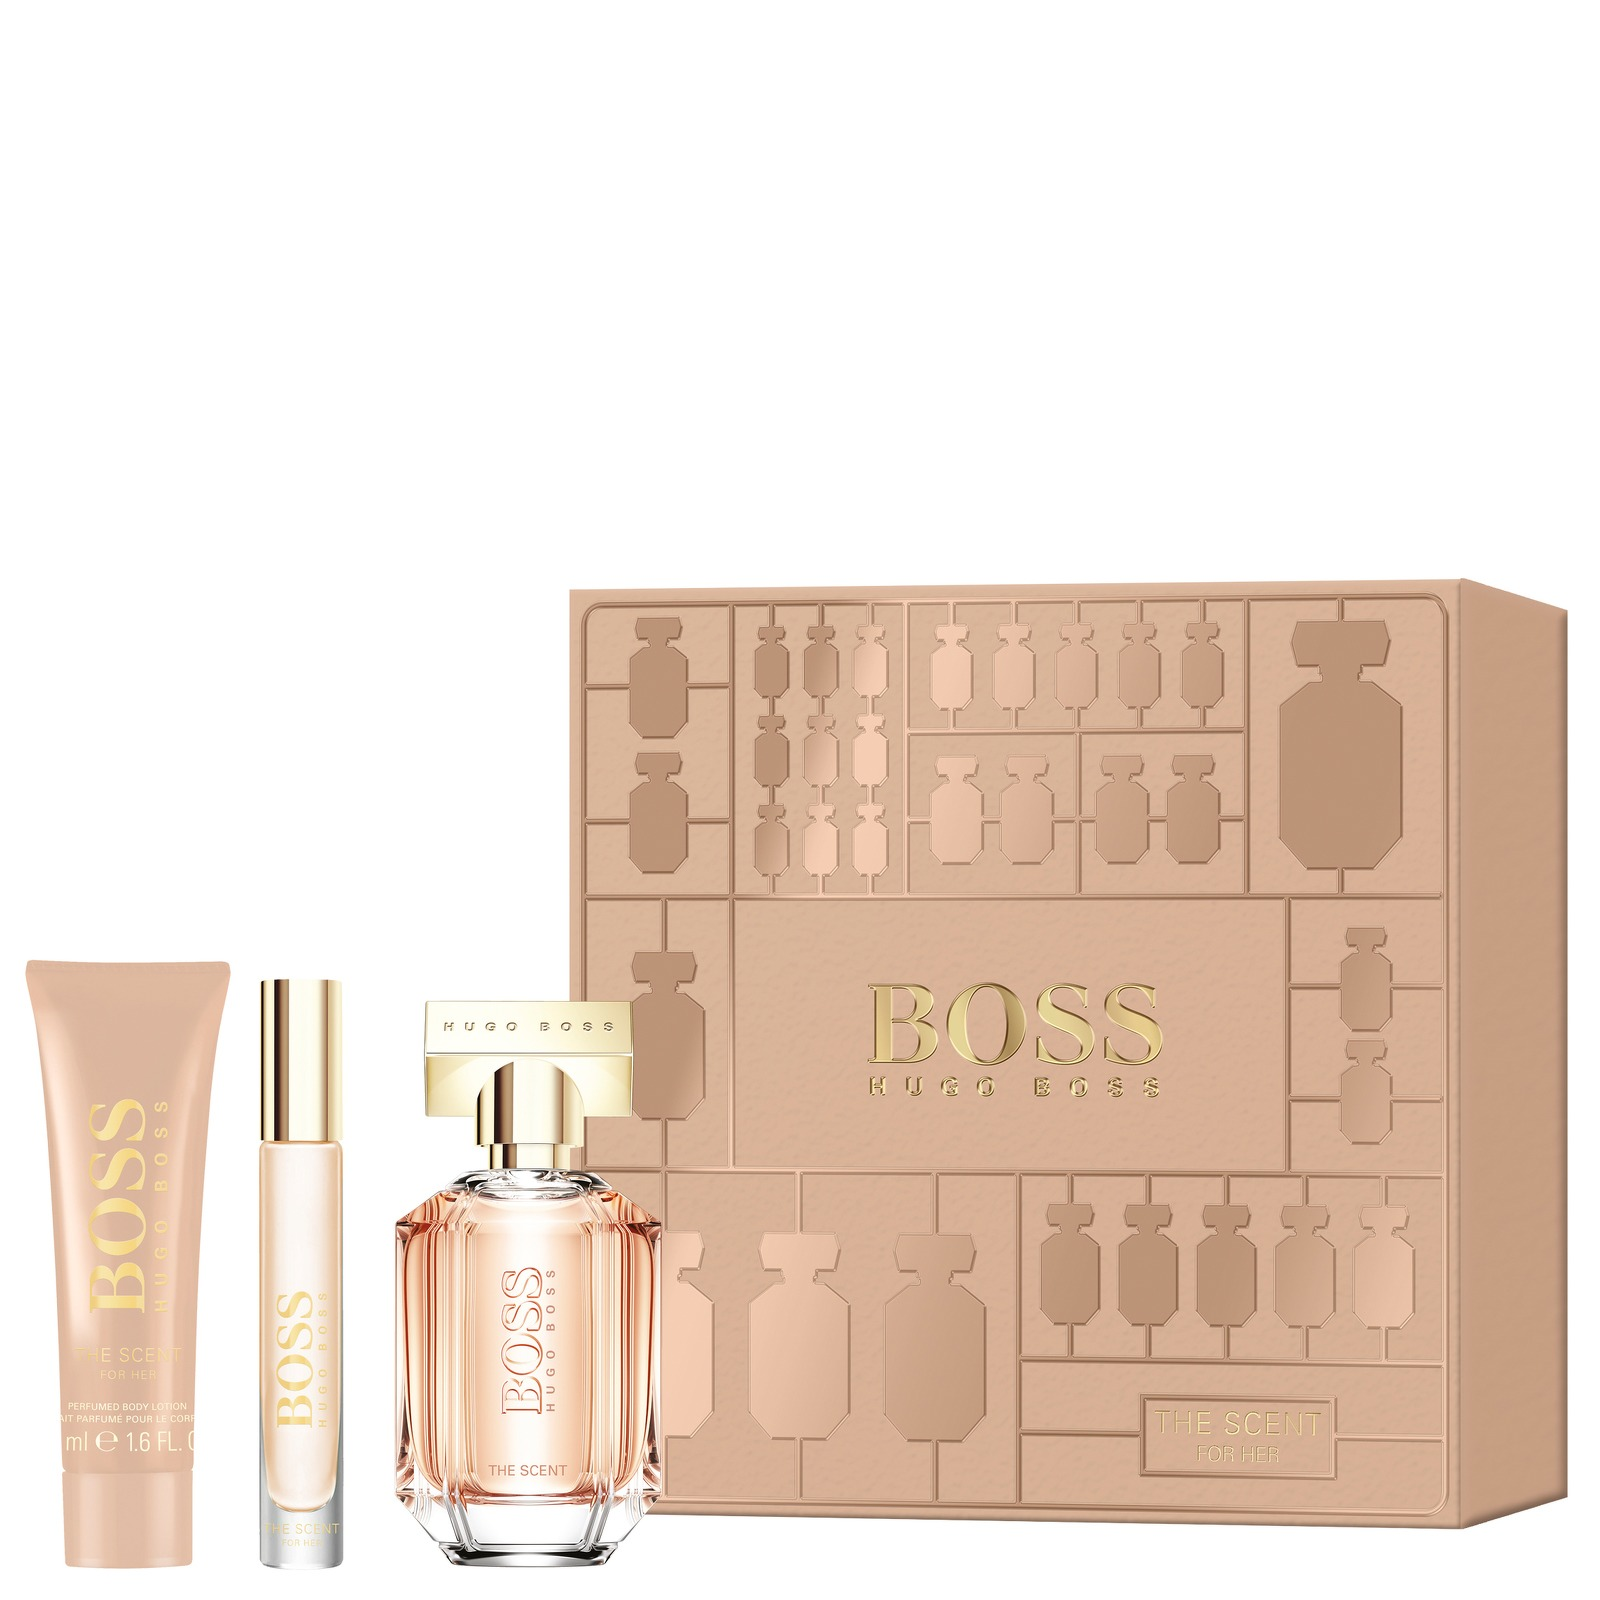 where can i buy professional sale hot sale Hugo Boss Boss The Scent For Her Eau de Parfum Spray 50ml Gift Set